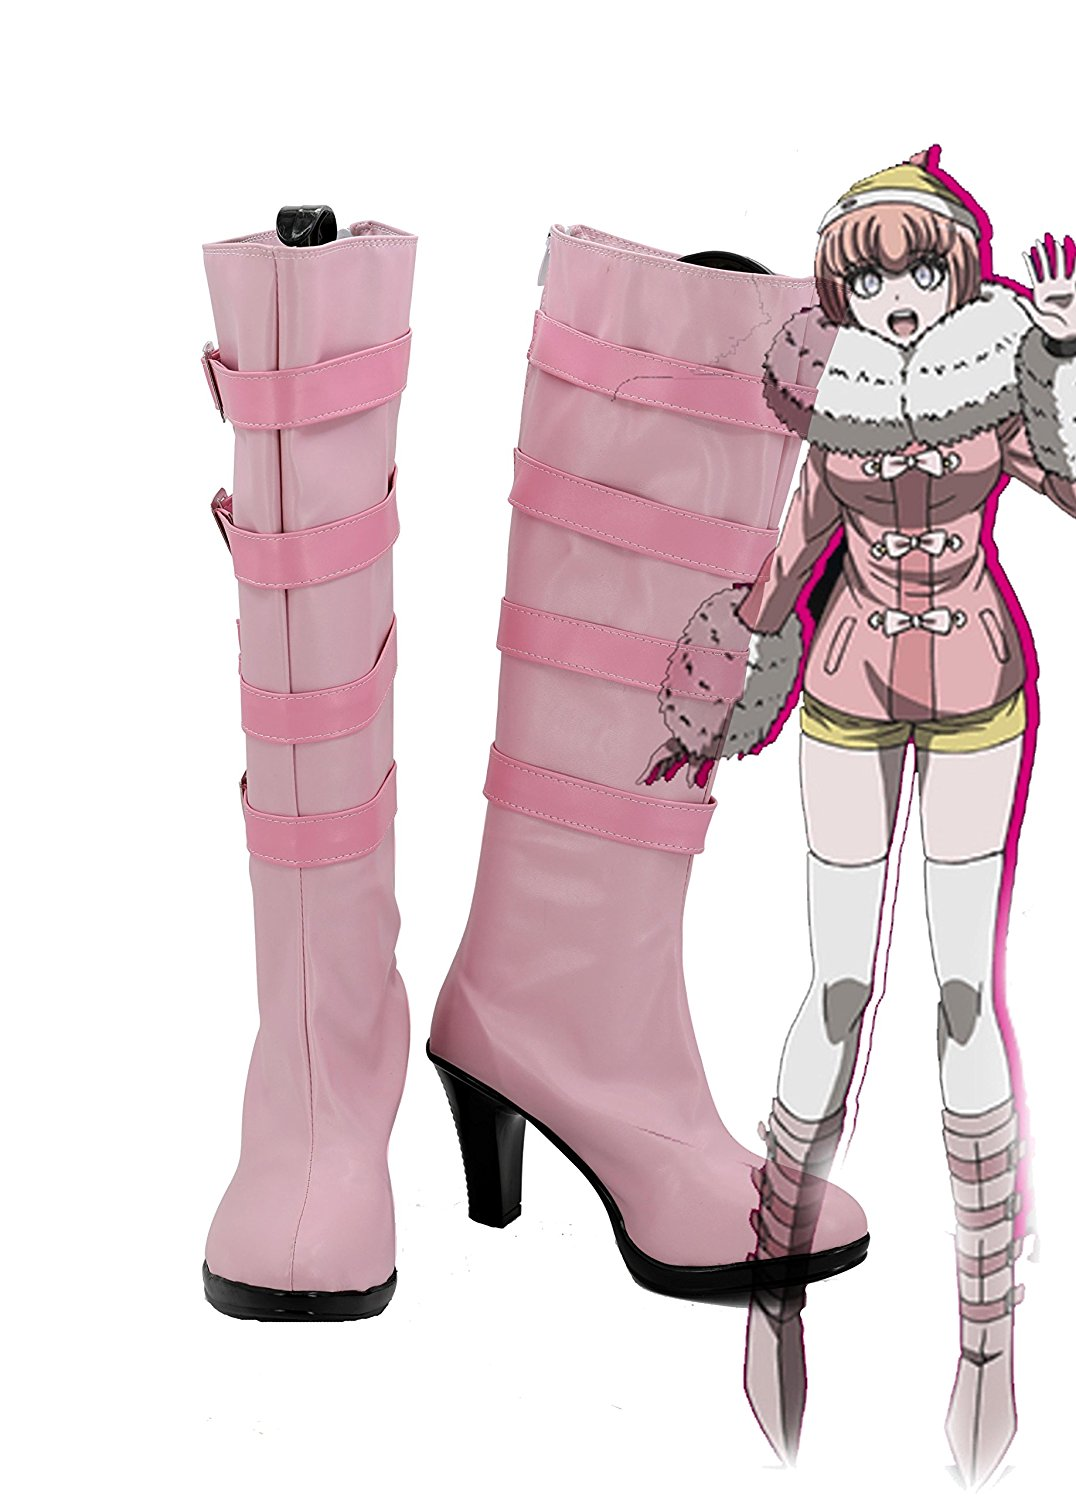 Danganronpa 3 Ruruka Ando Cosplay Boots Shoes High Heel Custom Made